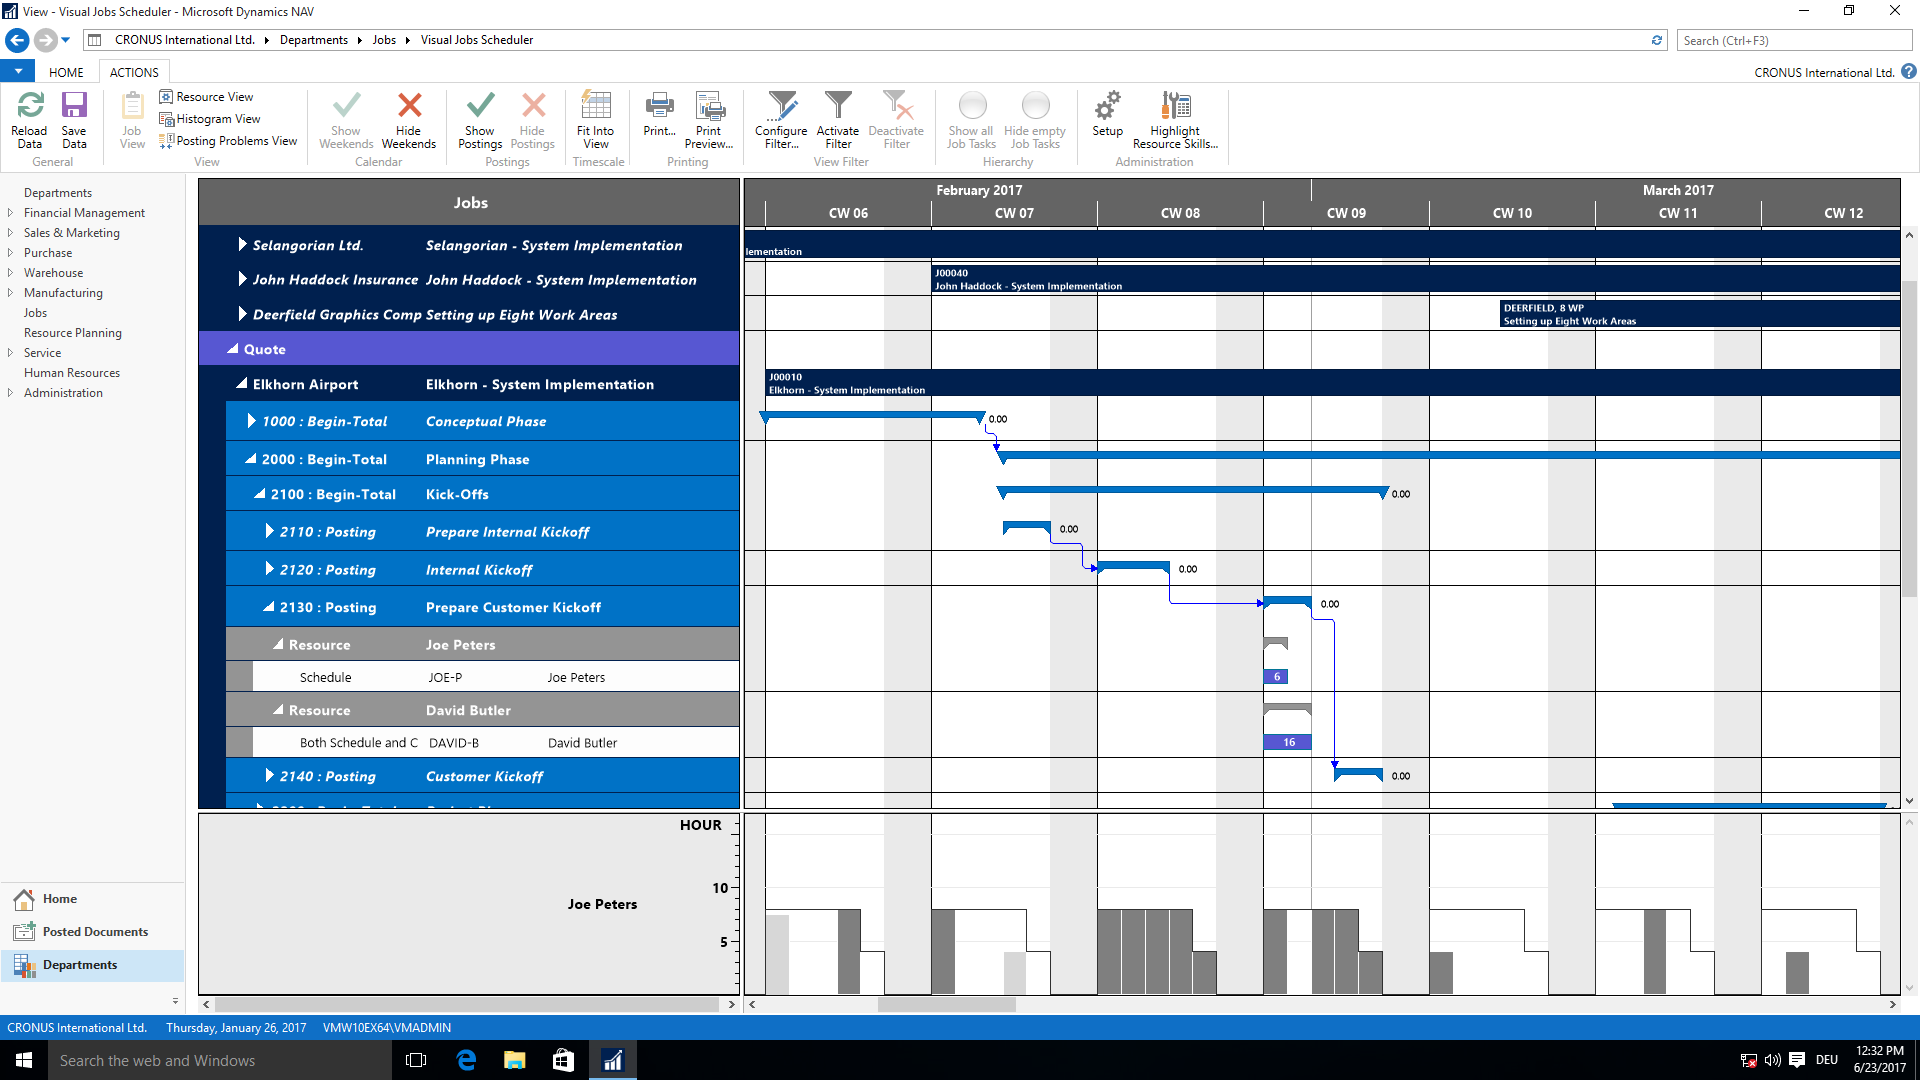 Visual Jobs Scheduler -Projekplan für Dynamics NAV